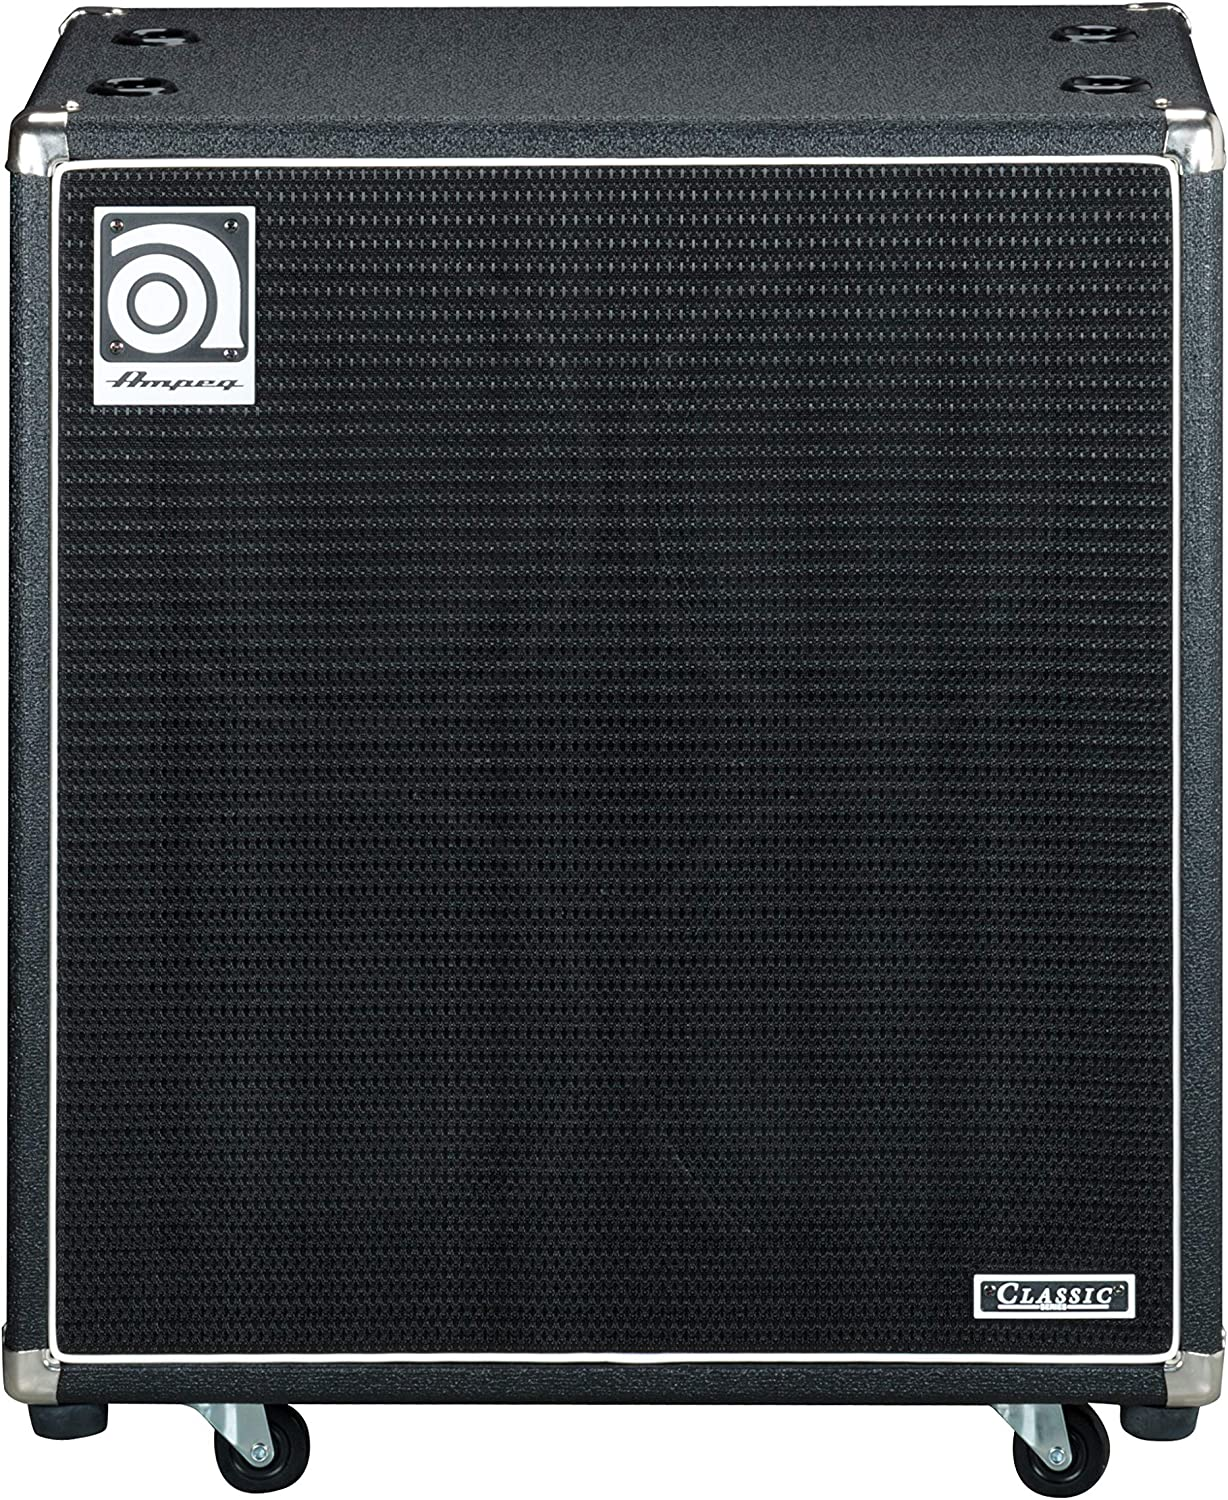 Ampeg Recommendation SVT-410HE Bass Free shipping anywhere in the nation Amplifier Cabinet 4x10